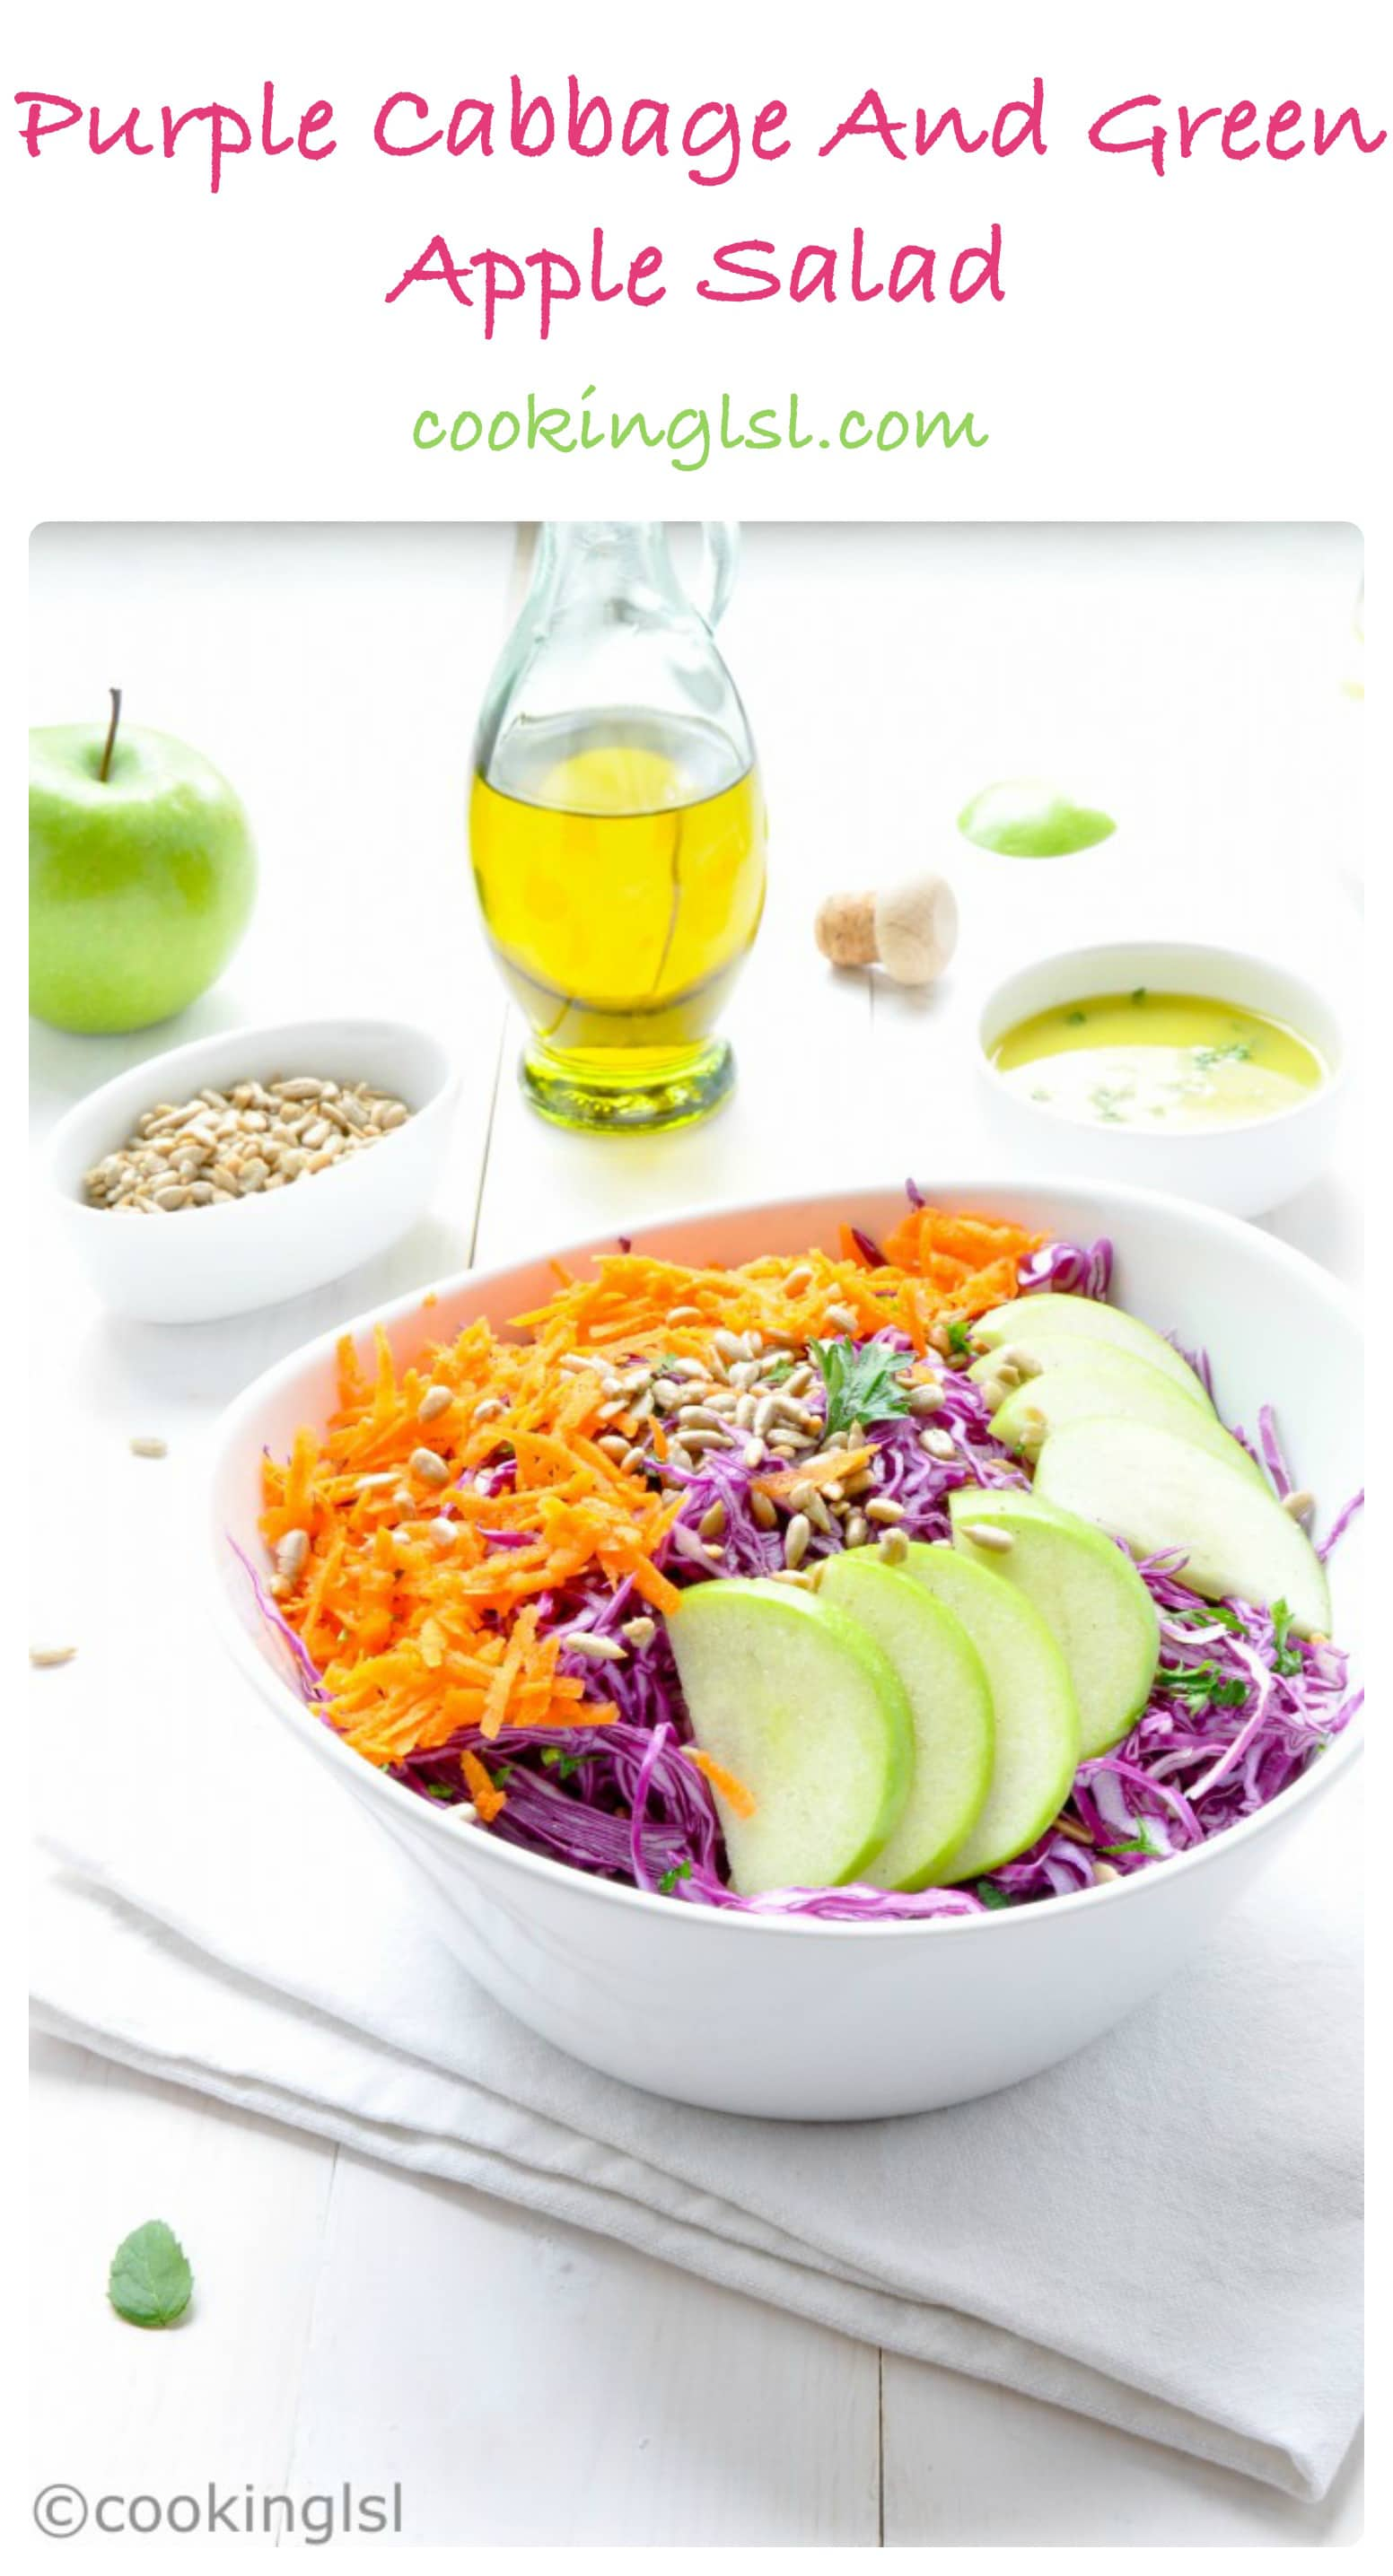 Purple-Cabbage-And-Green-Apple-Salad